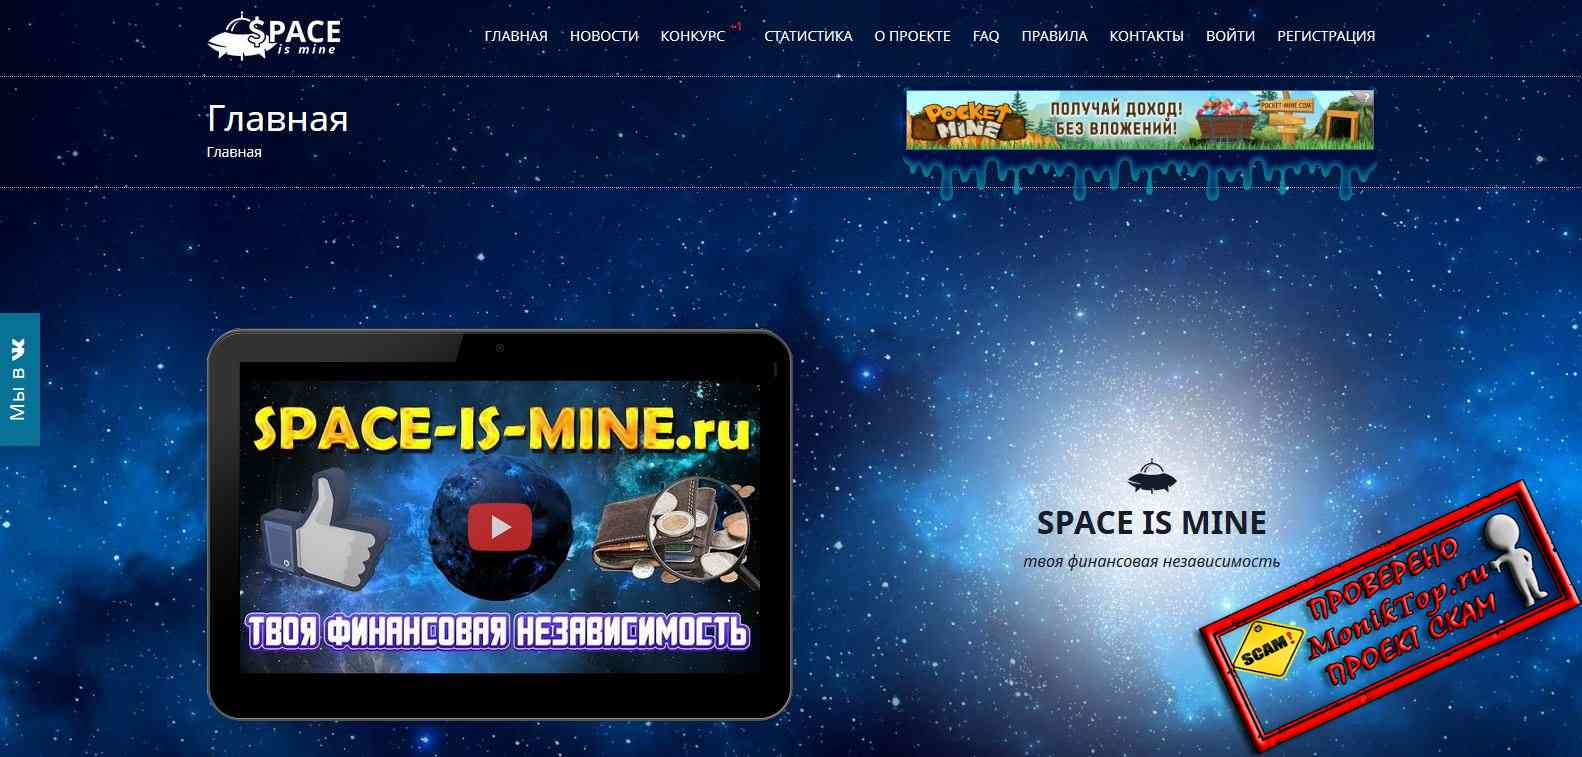 Space is mine